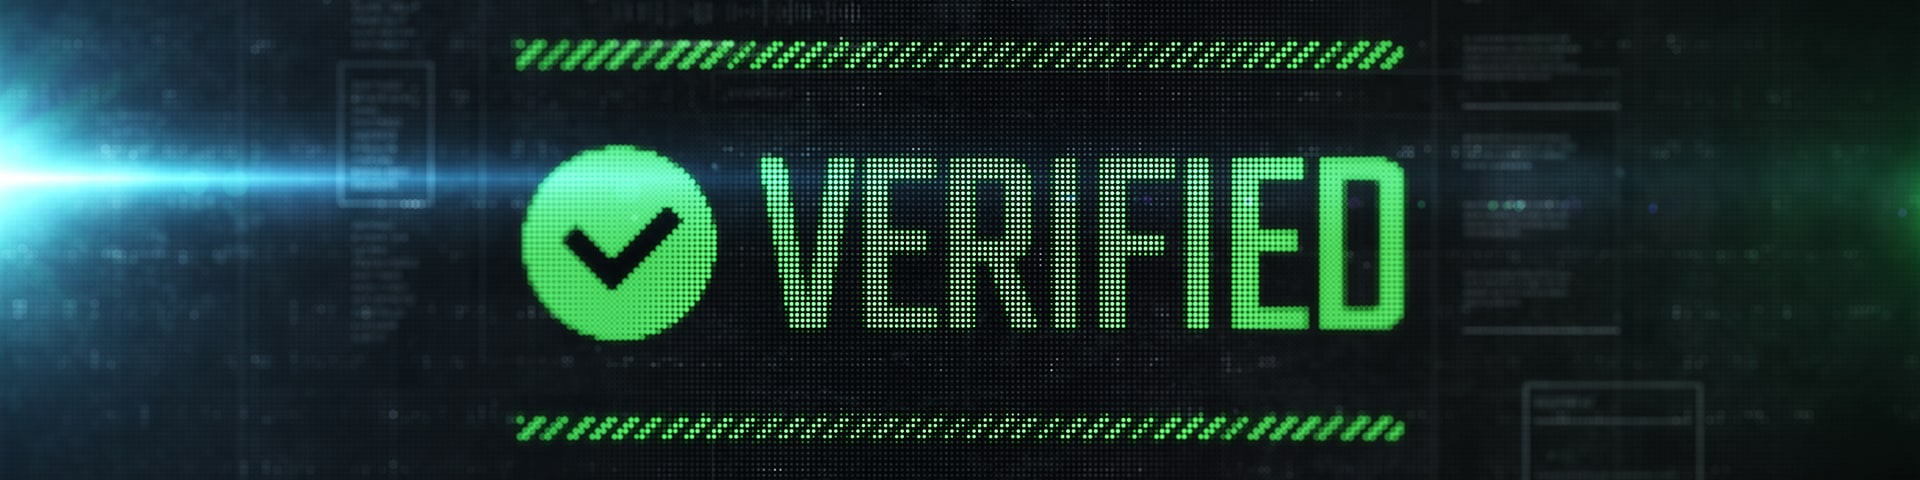 How to Get Verified on Instagram: A Simple User Guide